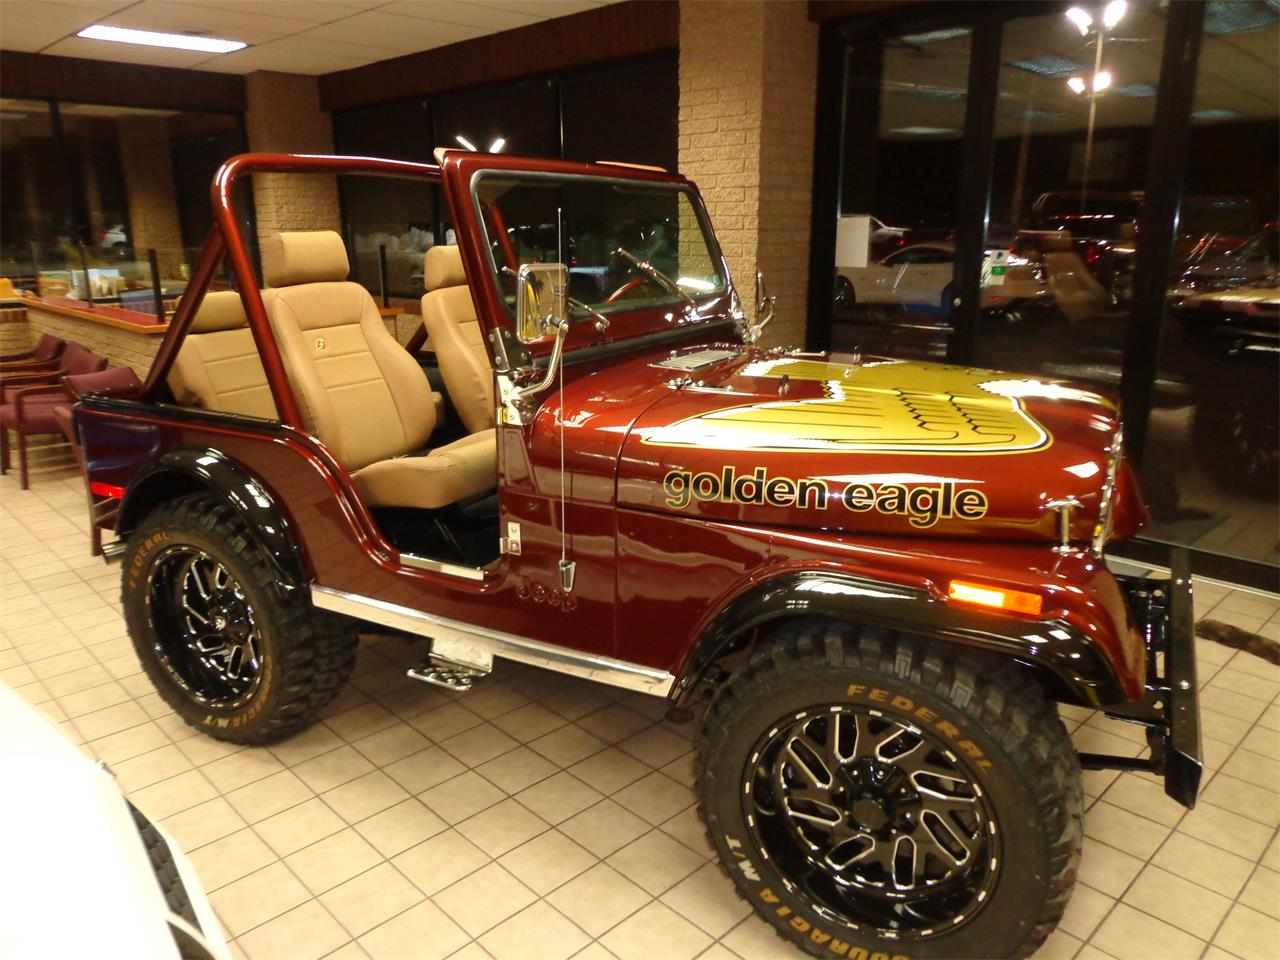 Large Picture of 1979 CJ5 located in MILL HALL Pennsylvania Offered by Miller Brothers Auto Sales Inc - MU6A